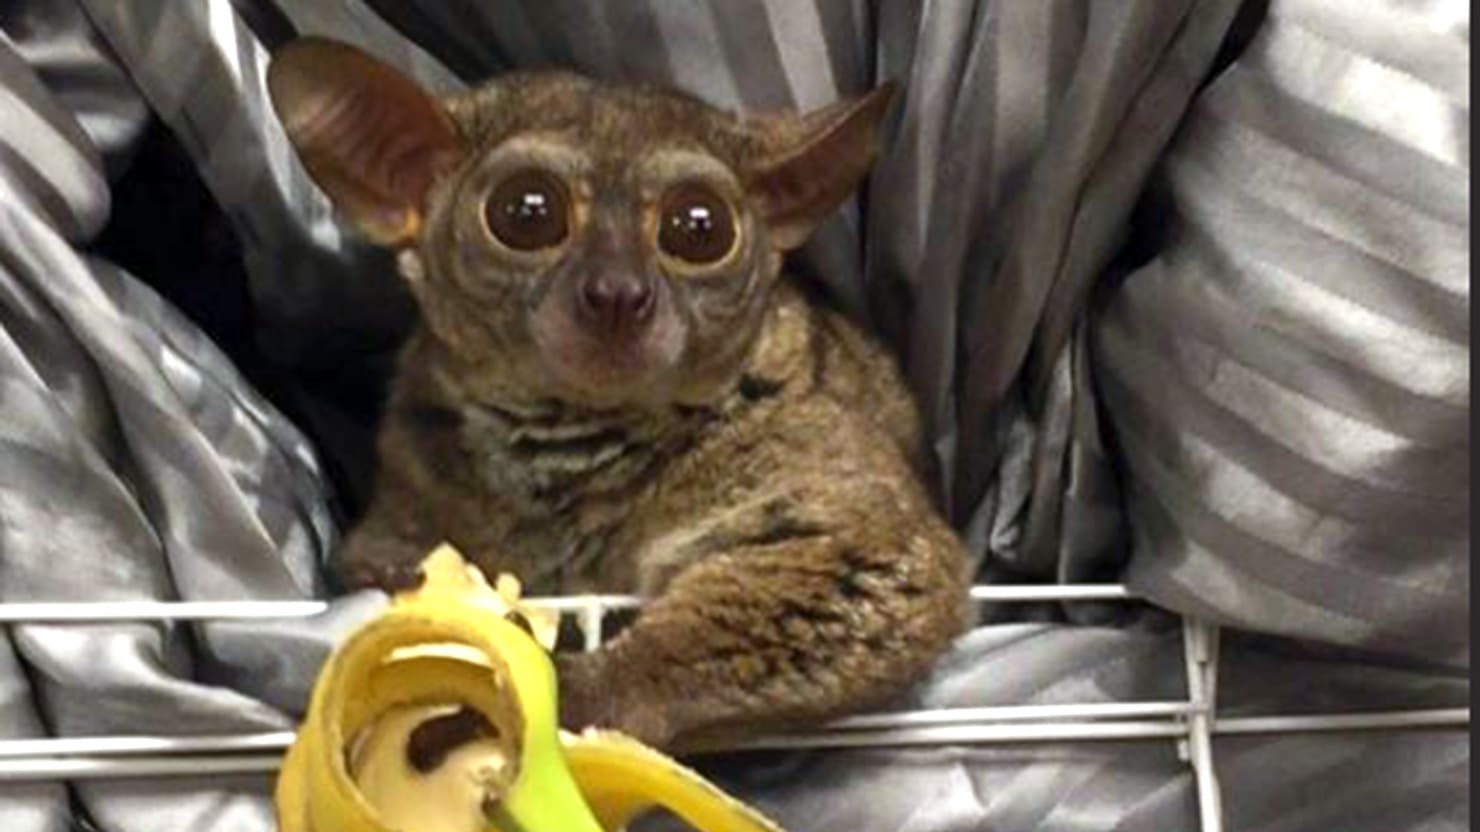 Man Robs Wife's Pet Store, Gives Monkey to Prostitute